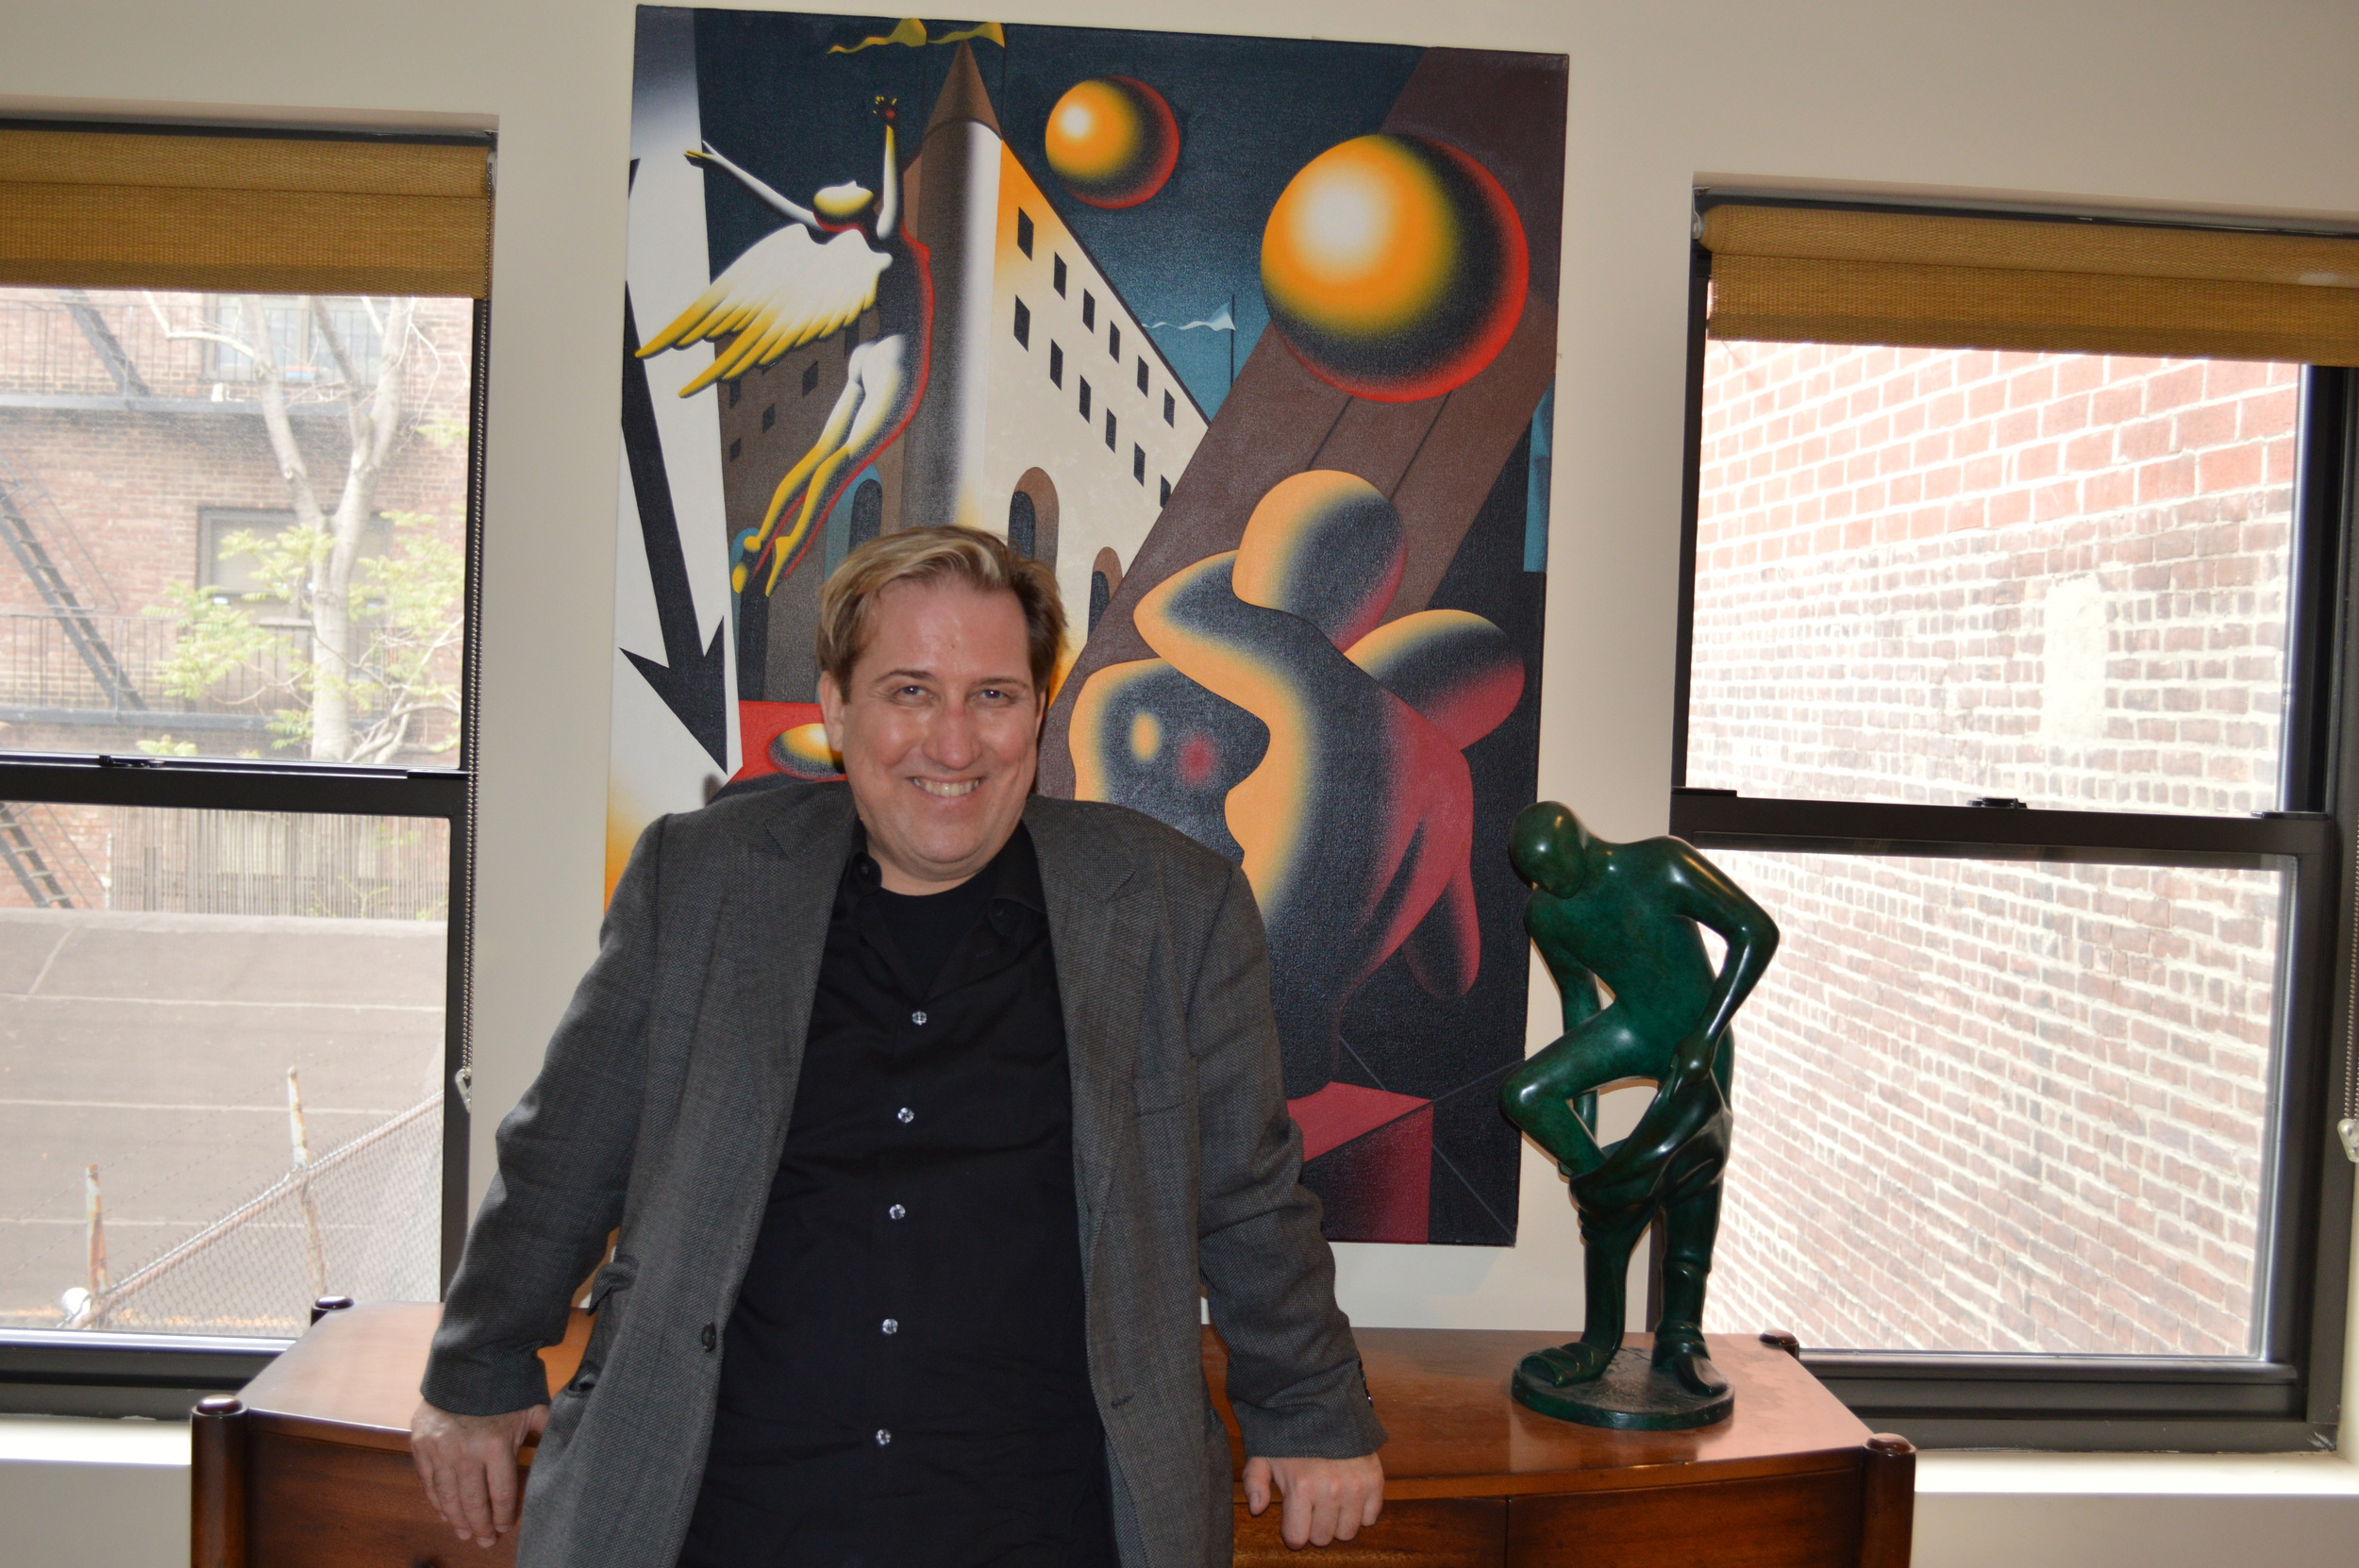 Mark Kostabi posing in front of his work.